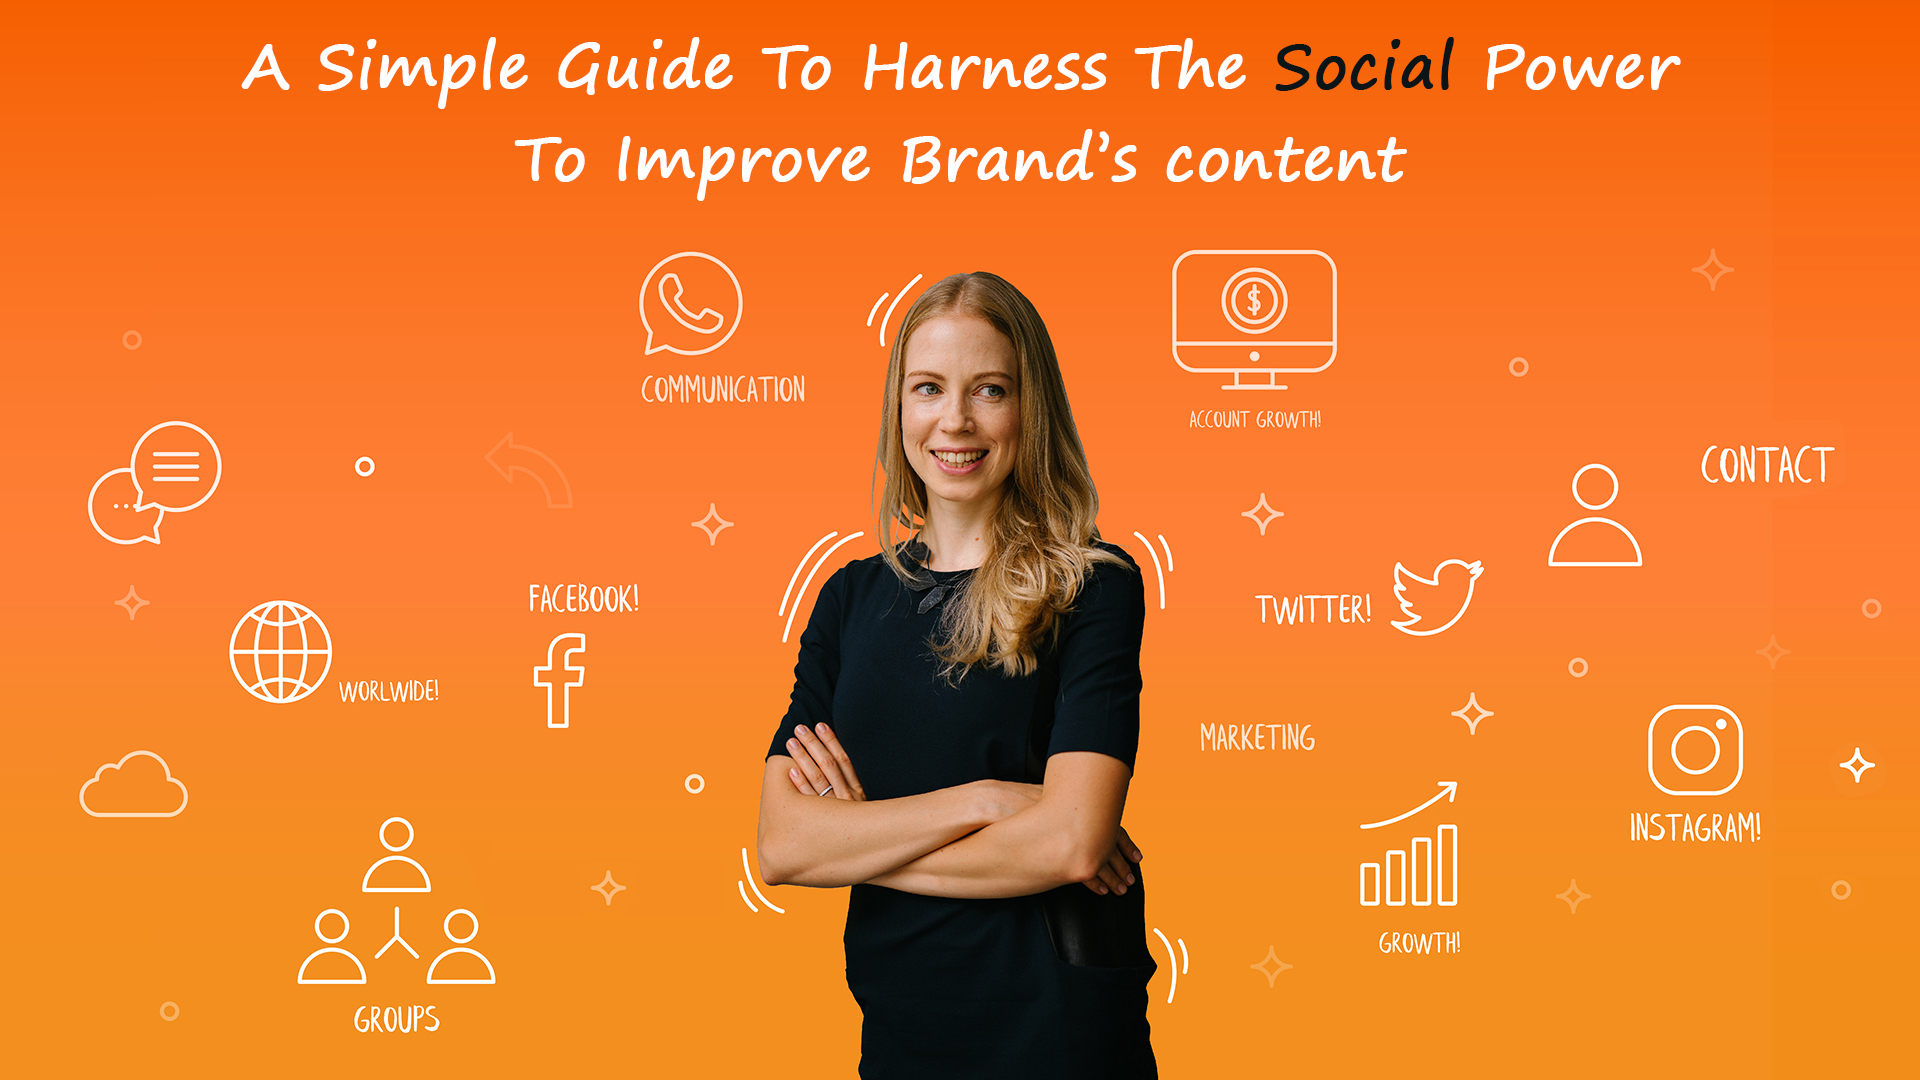 A Simple Guide To Harness The Social Power To Improve Brand's content